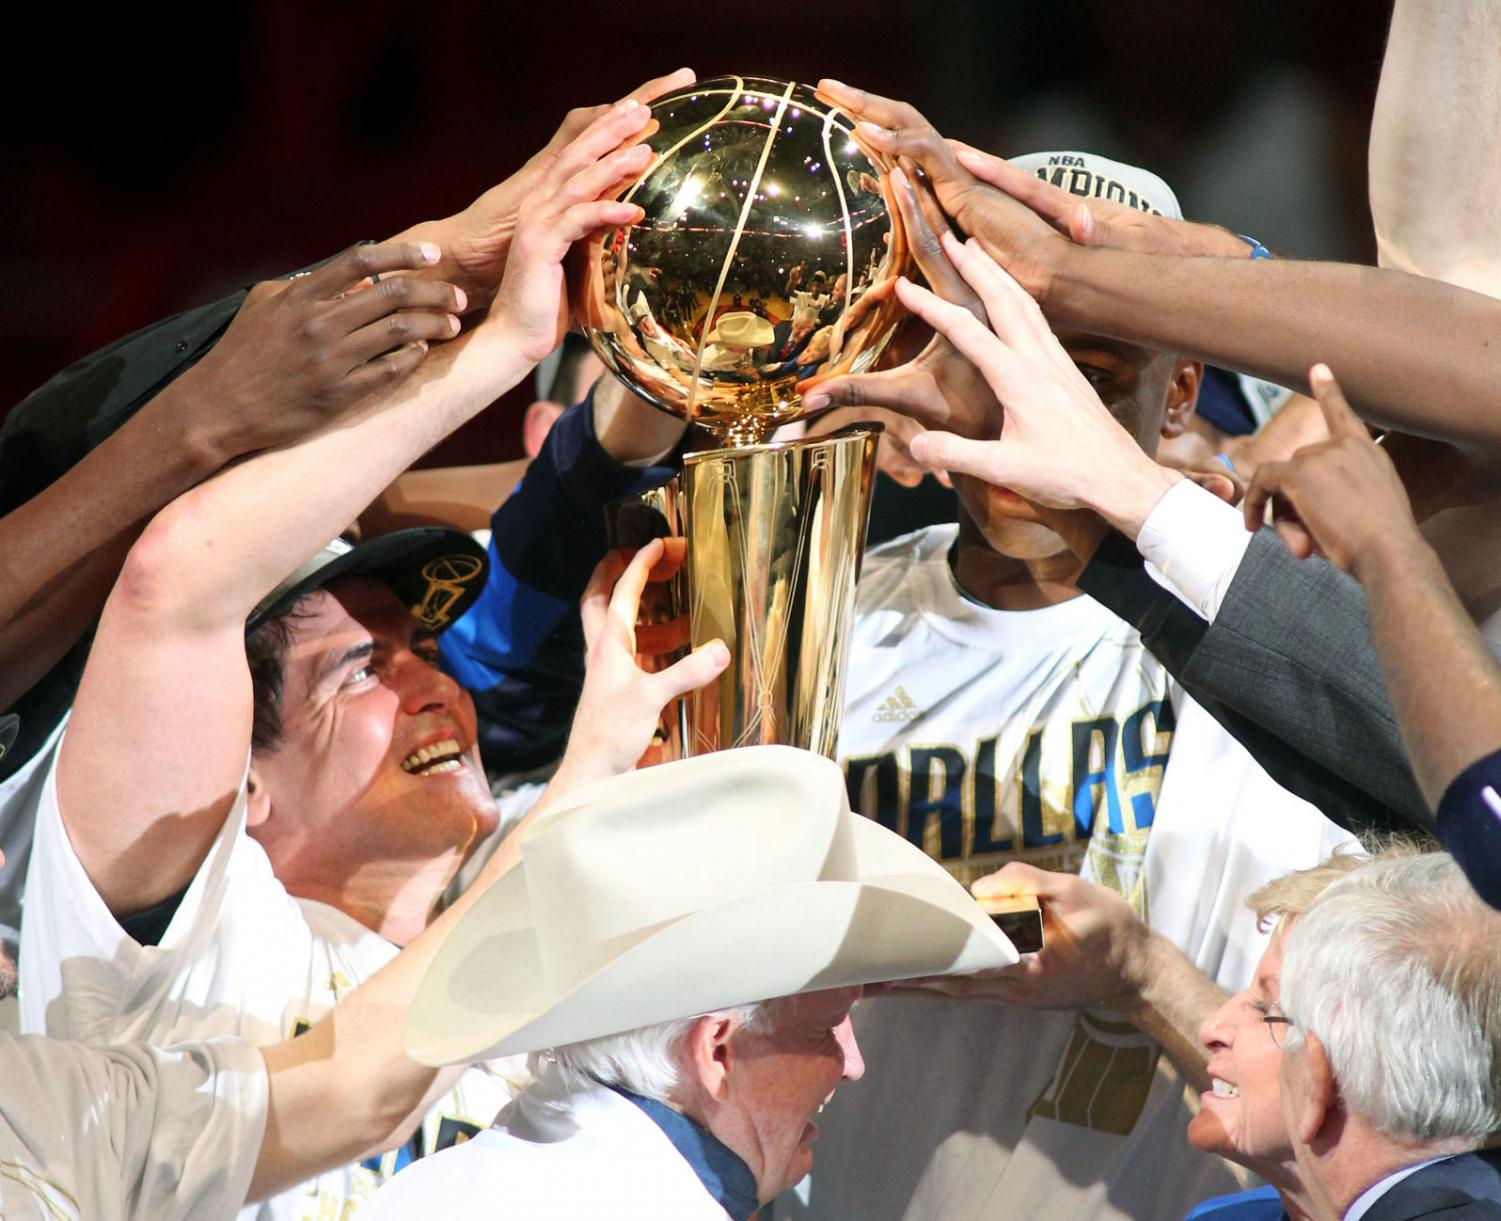 The final 16 teams are making a push for the Larry O'Brien Trophy